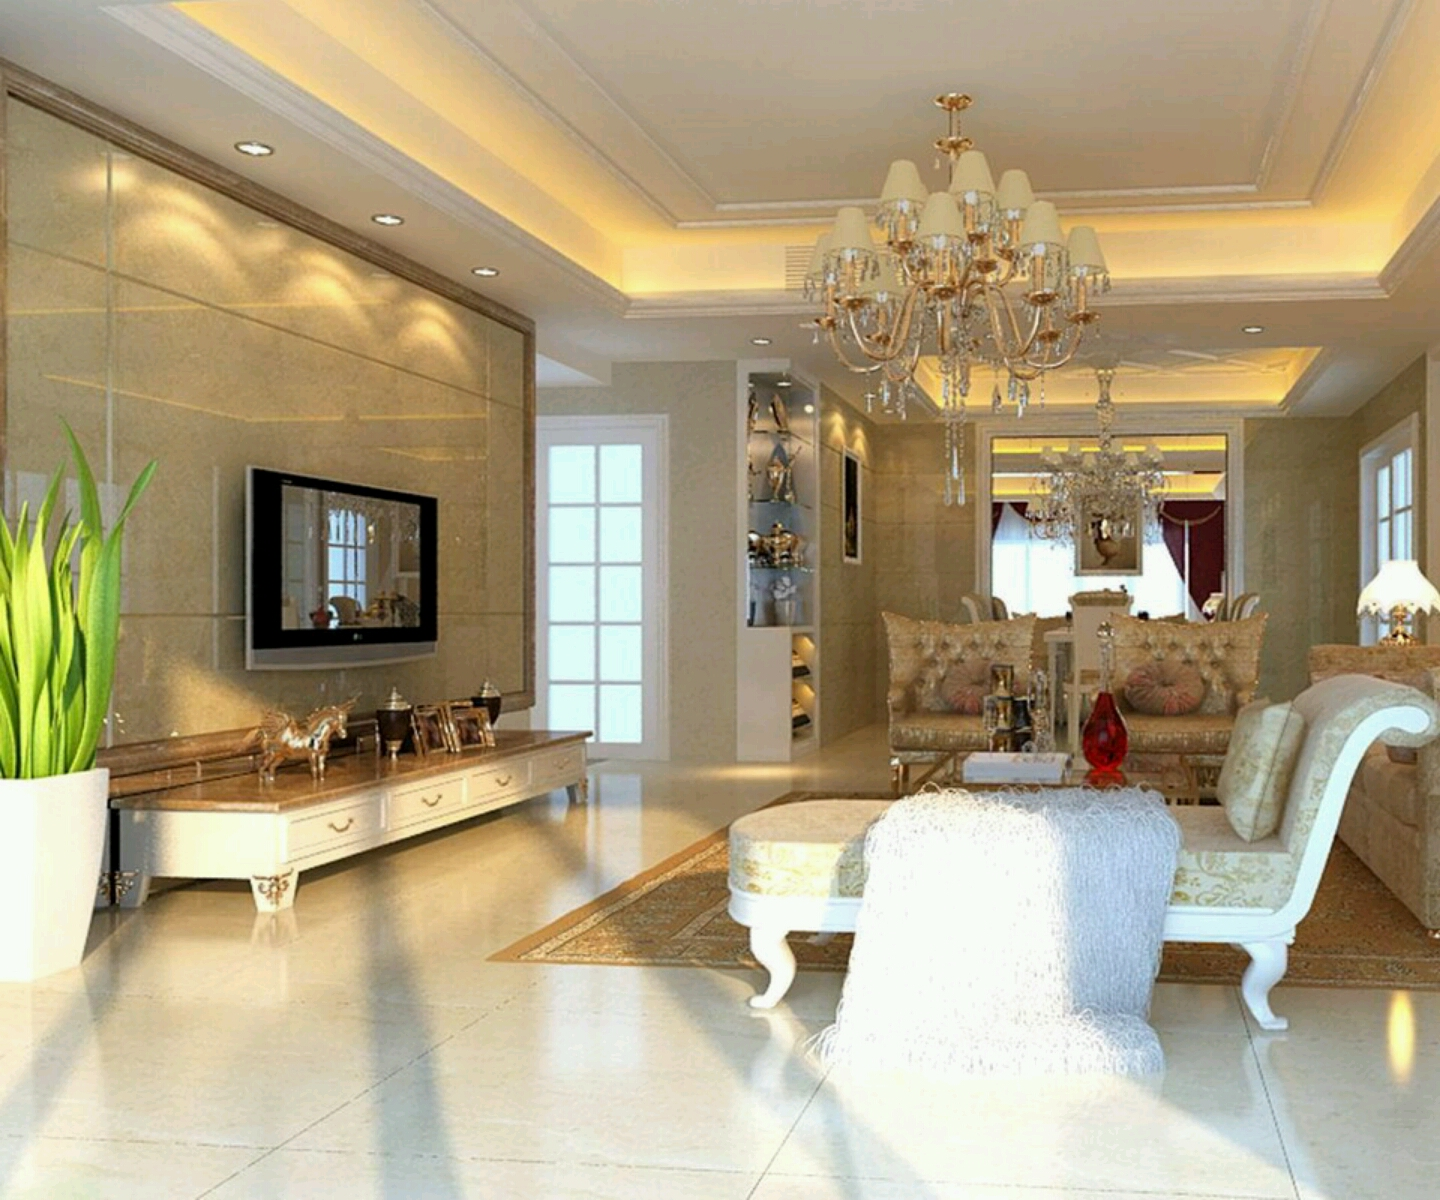 new home designs latest luxury homes interior decoration track lighting ideas design home lighting design ideas